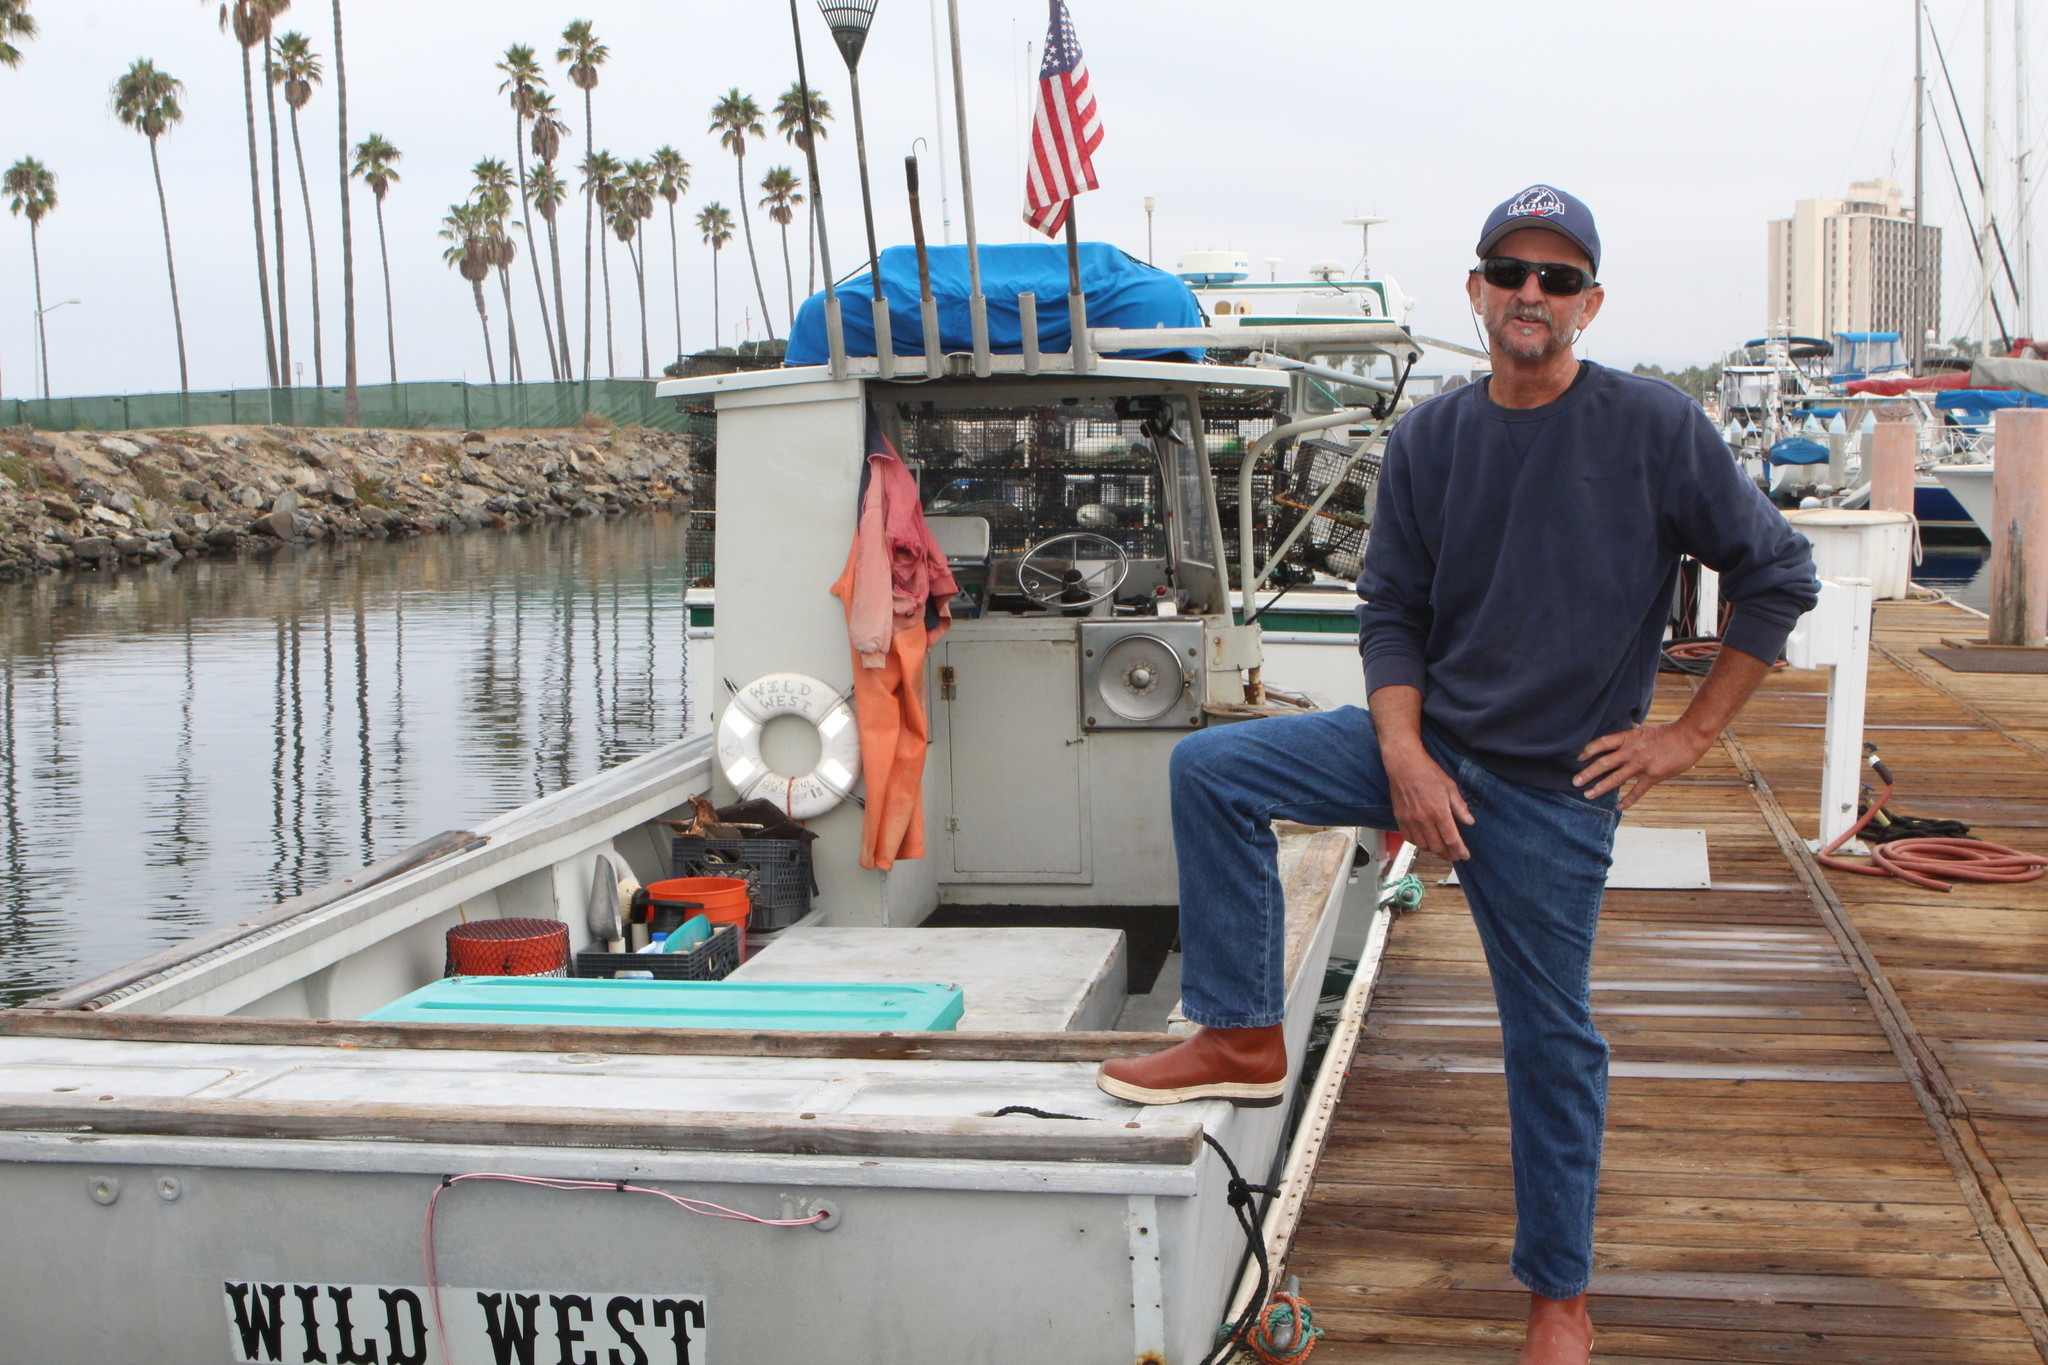 John Law poses next to the skiff, Wild West, which he's owned since 2000.